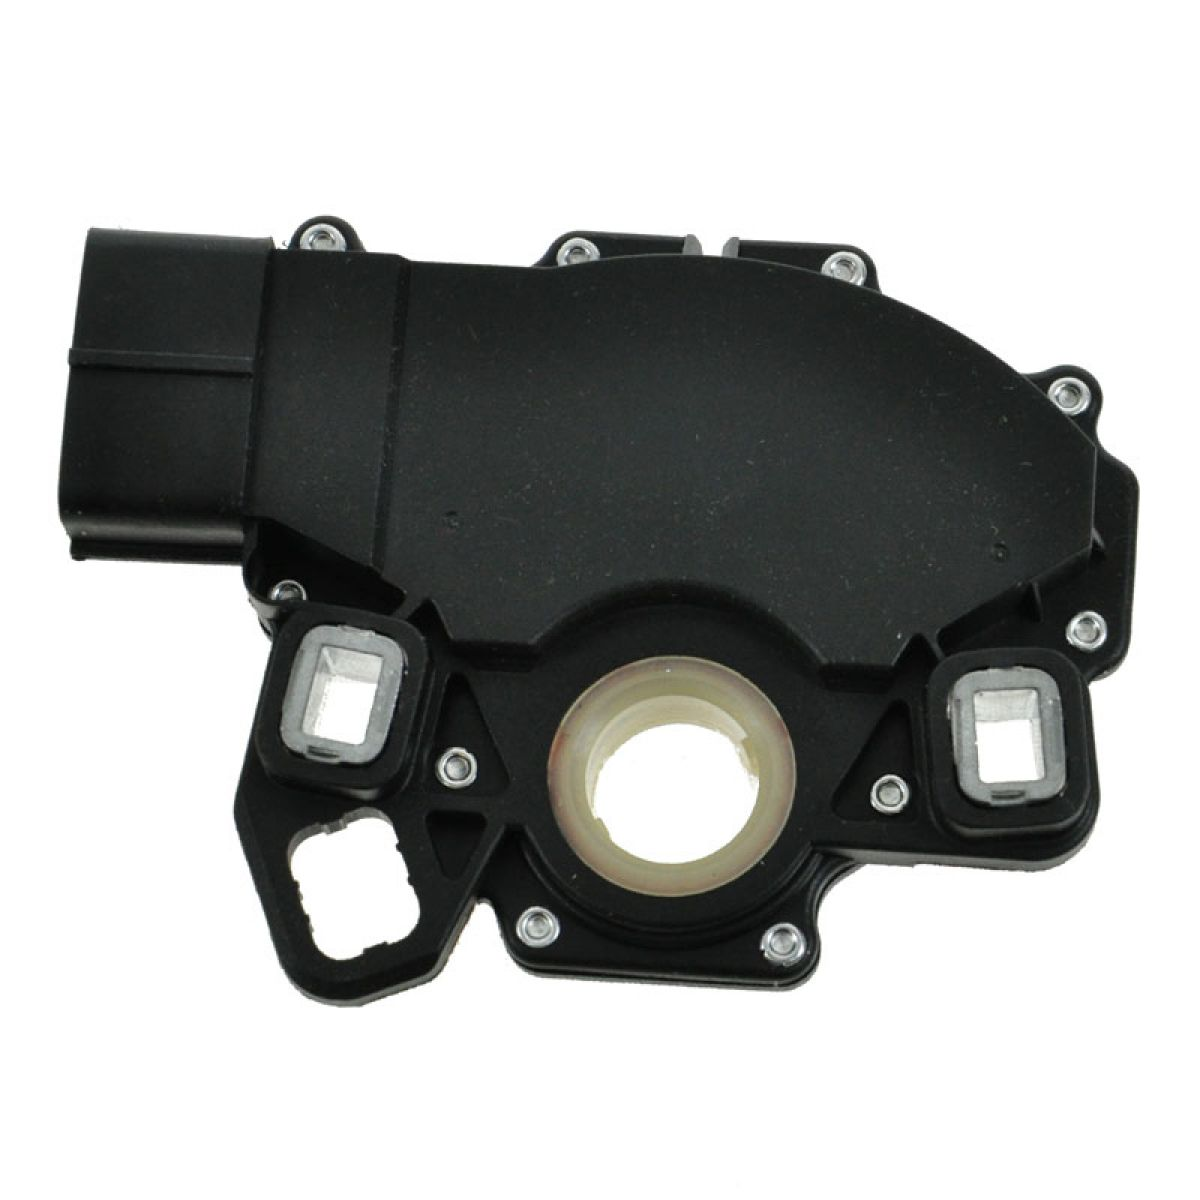 hight resolution of at automatic transmission neutral safety switch for ford lincoln mercury mazda